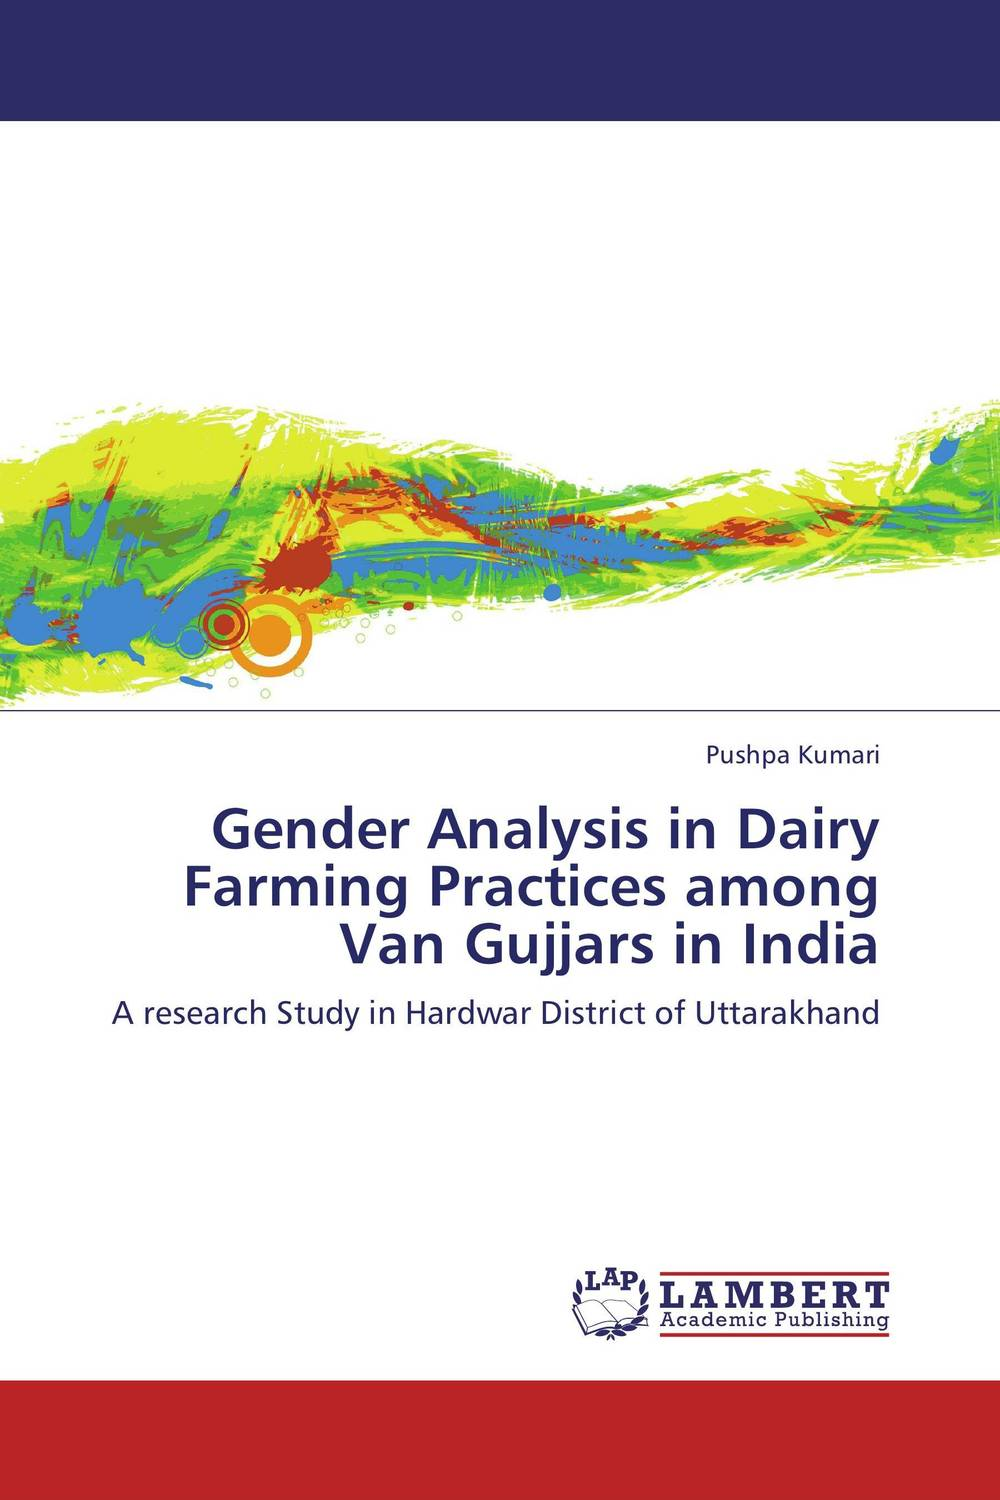 Gender Analysis in Dairy Farming Practices among Van Gujjars in India role of women in agroforestry practices management